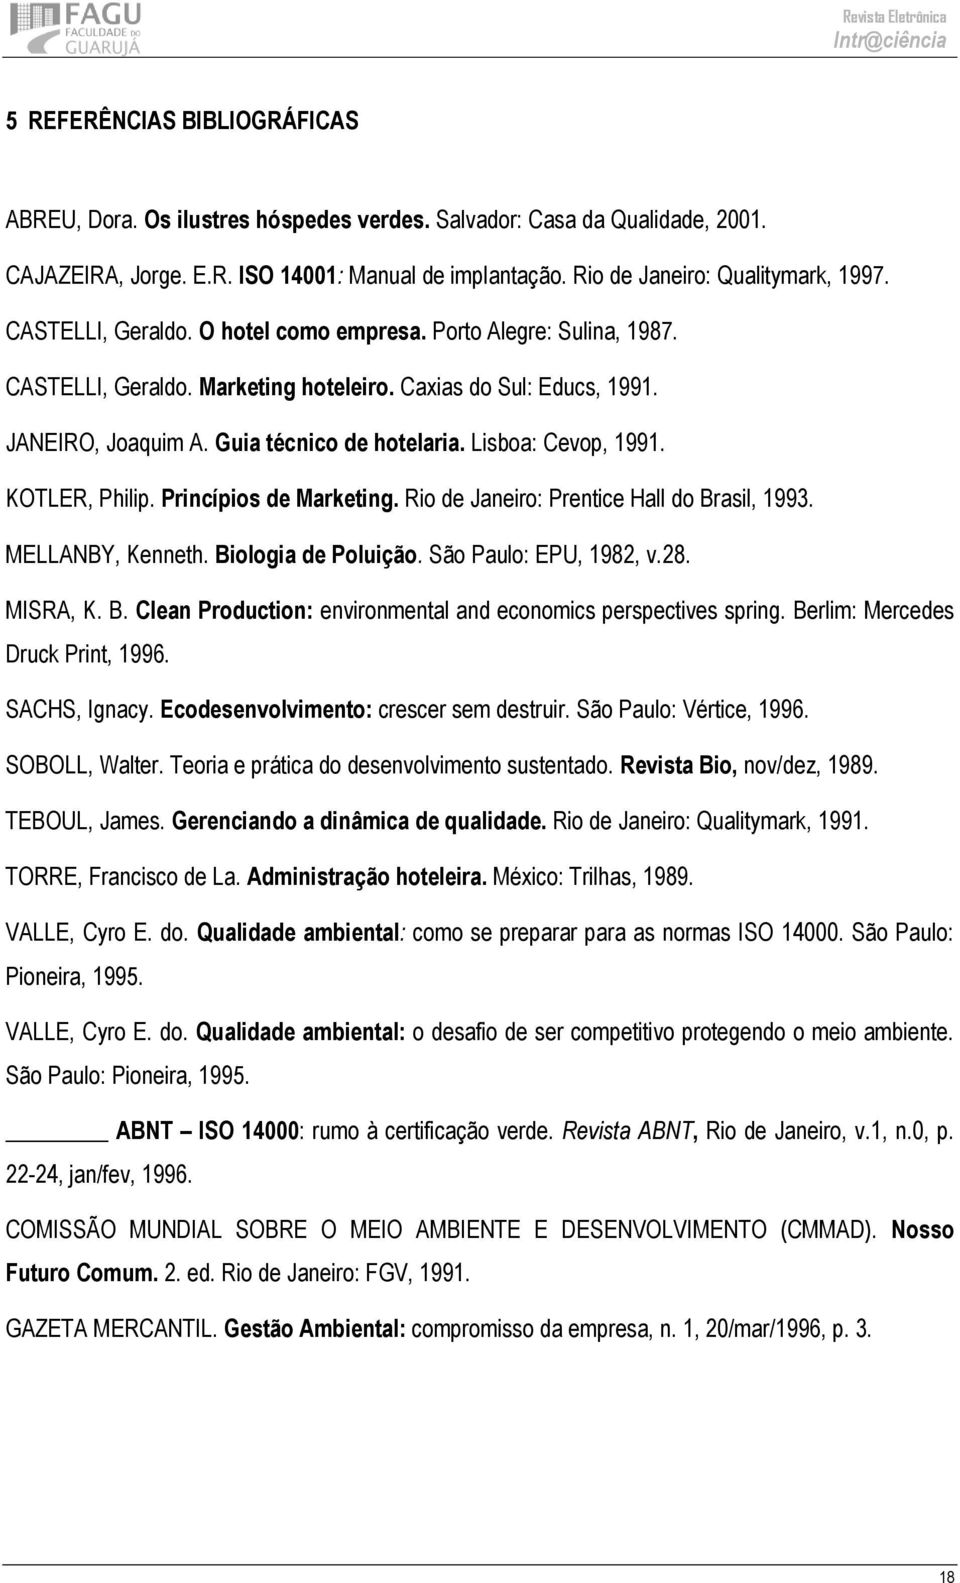 Lisboa: Cevop, 1991. KOTLER, Philip. Princípios de Marketing. Rio de Janeiro: Prentice Hall do Brasil, 1993. MELLANBY, Kenneth. Biologia de Poluição. São Paulo: EPU, 1982, v.28. MISRA, K. B. Clean Production: environmental and economics perspectives spring.